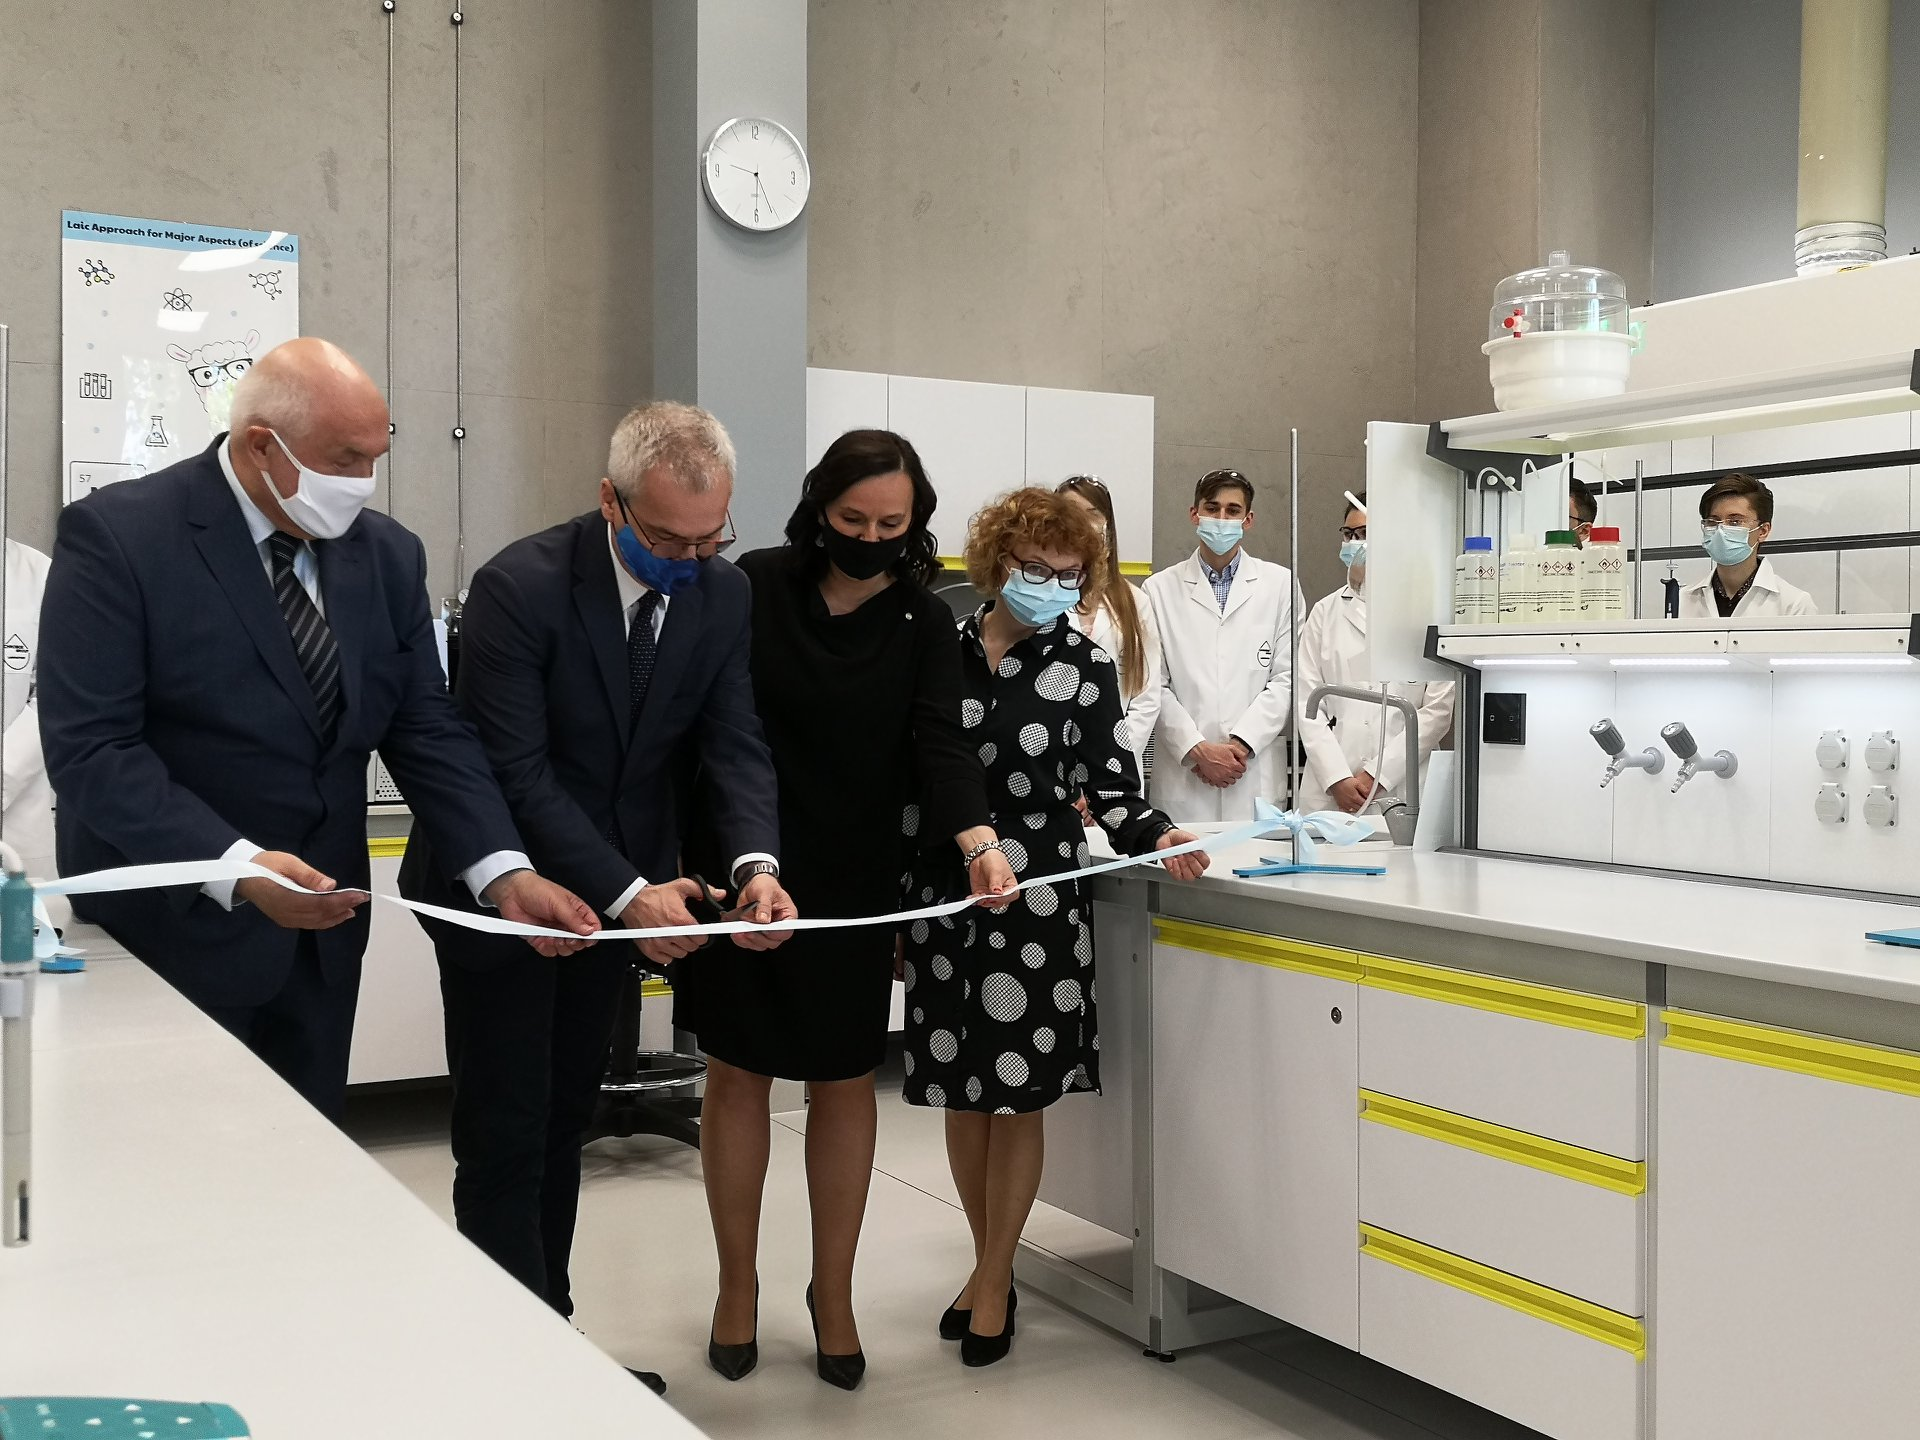 We have inaugurated the opening of our new laboratory!